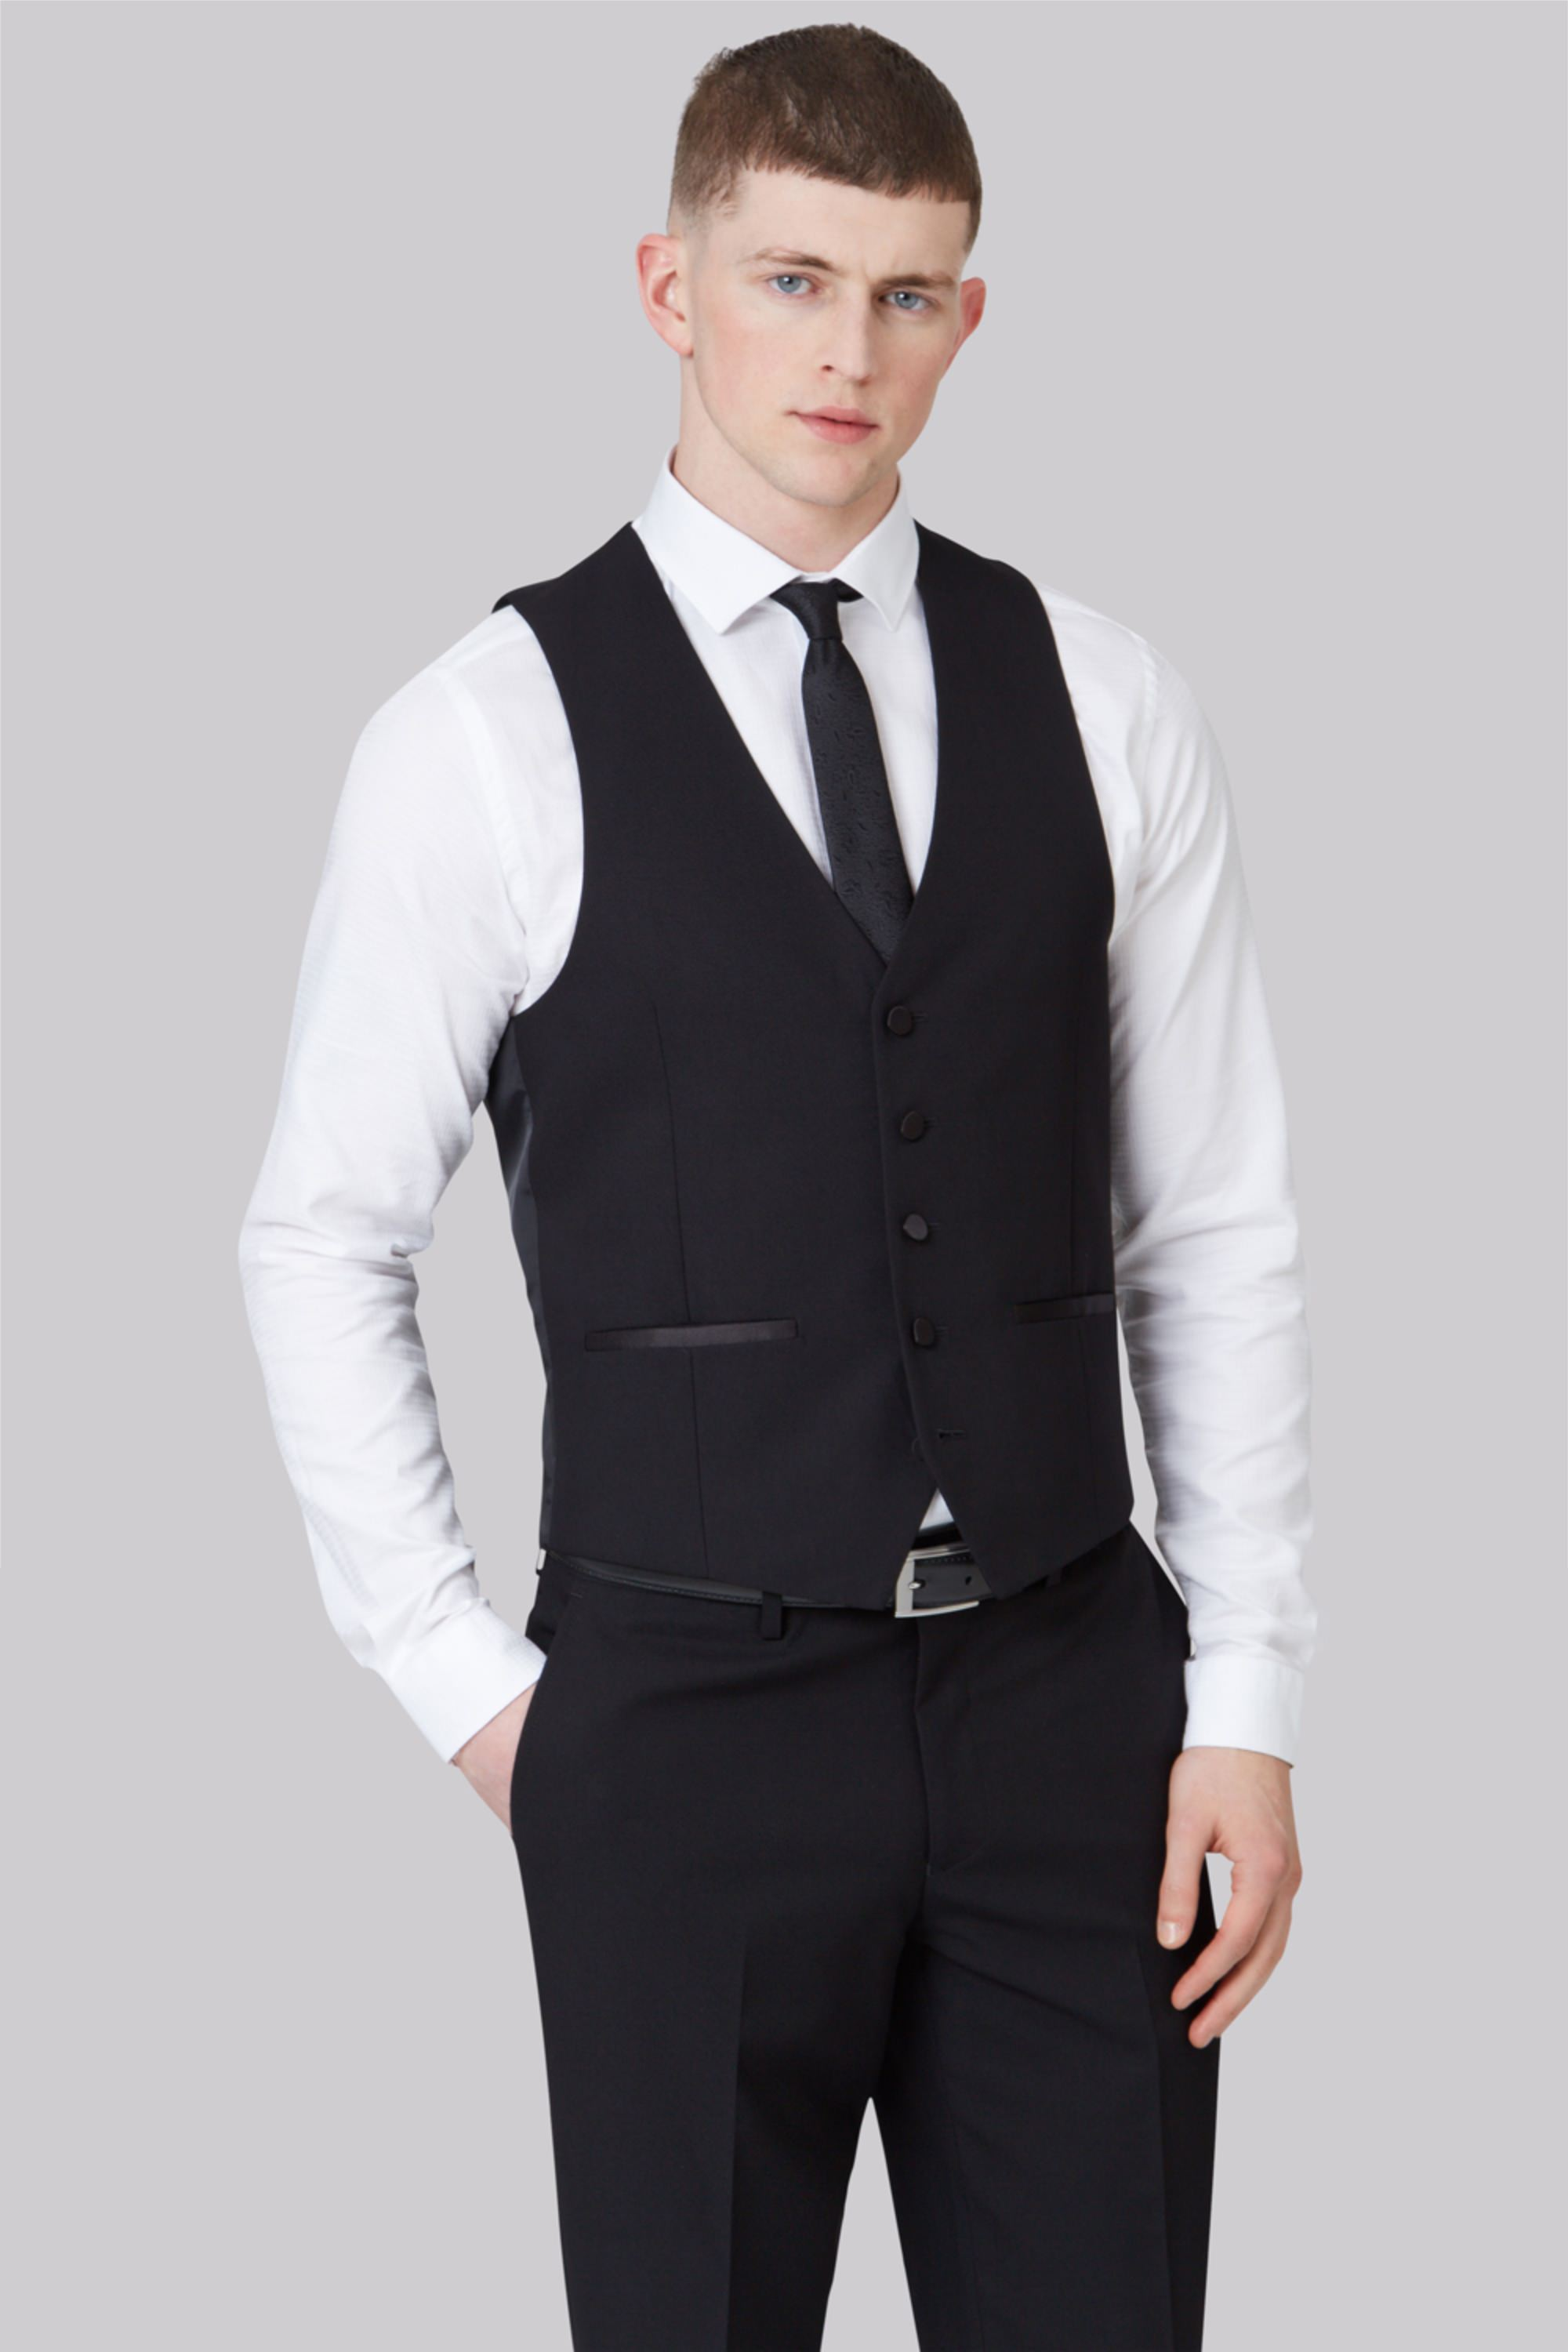 Shop mens waistcoats online at rabbetedh.ga, find the latest styles of cheap tweed waistcoats and checked waistcoats at discount price. Single Breasted Faux Leather Waistcoat - Black - 3xl. Quick Shop. Single Breasted Formal Vest - Gray - 2xl. Quick Shop. Layered Single-breasted Print Vest - Red Wine - XS.